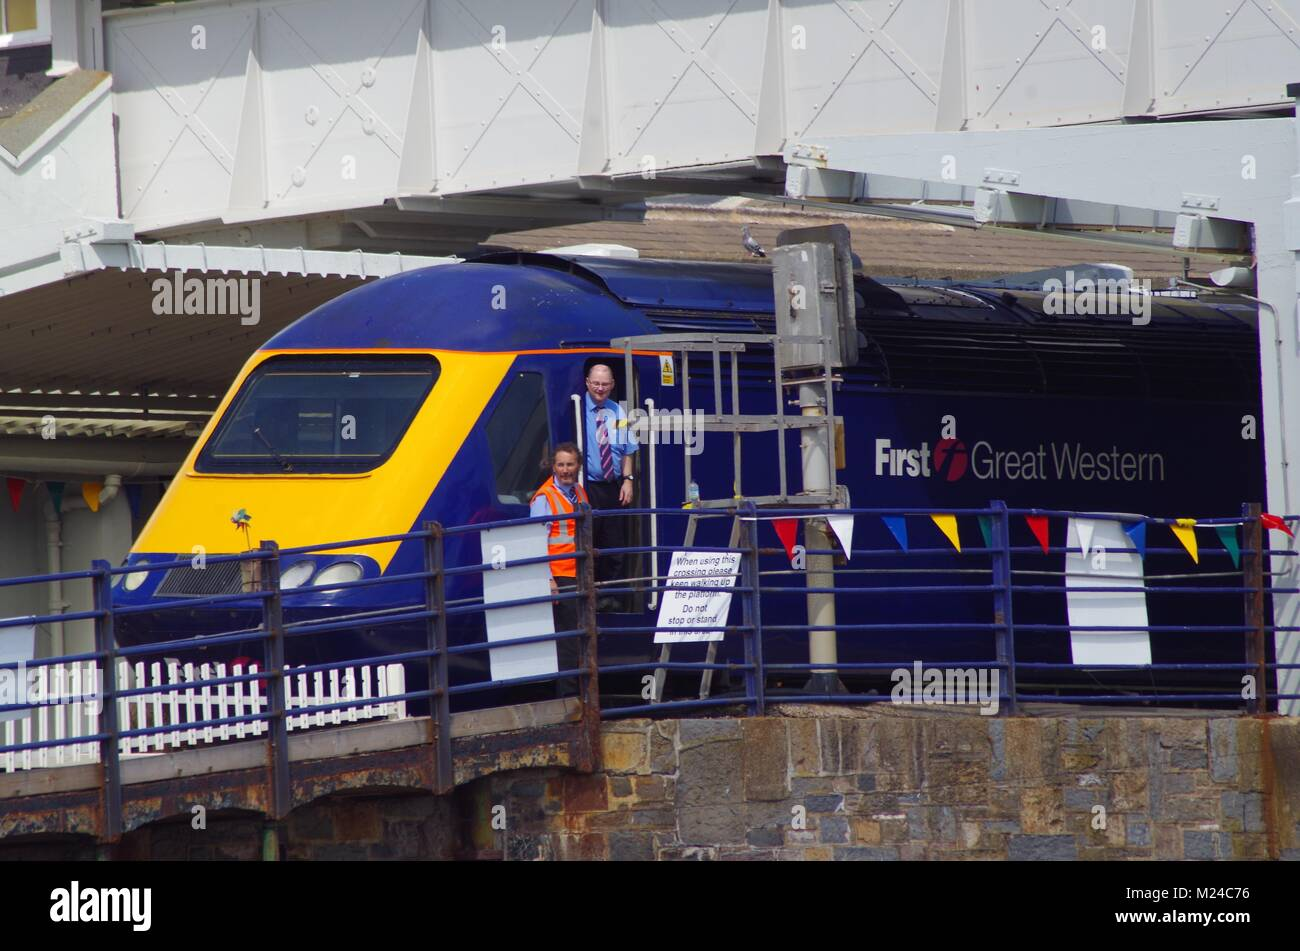 First Great Western Train at Dawlish Station with Bunting on the Day of the Air Show. Devon, UK. - Stock Image